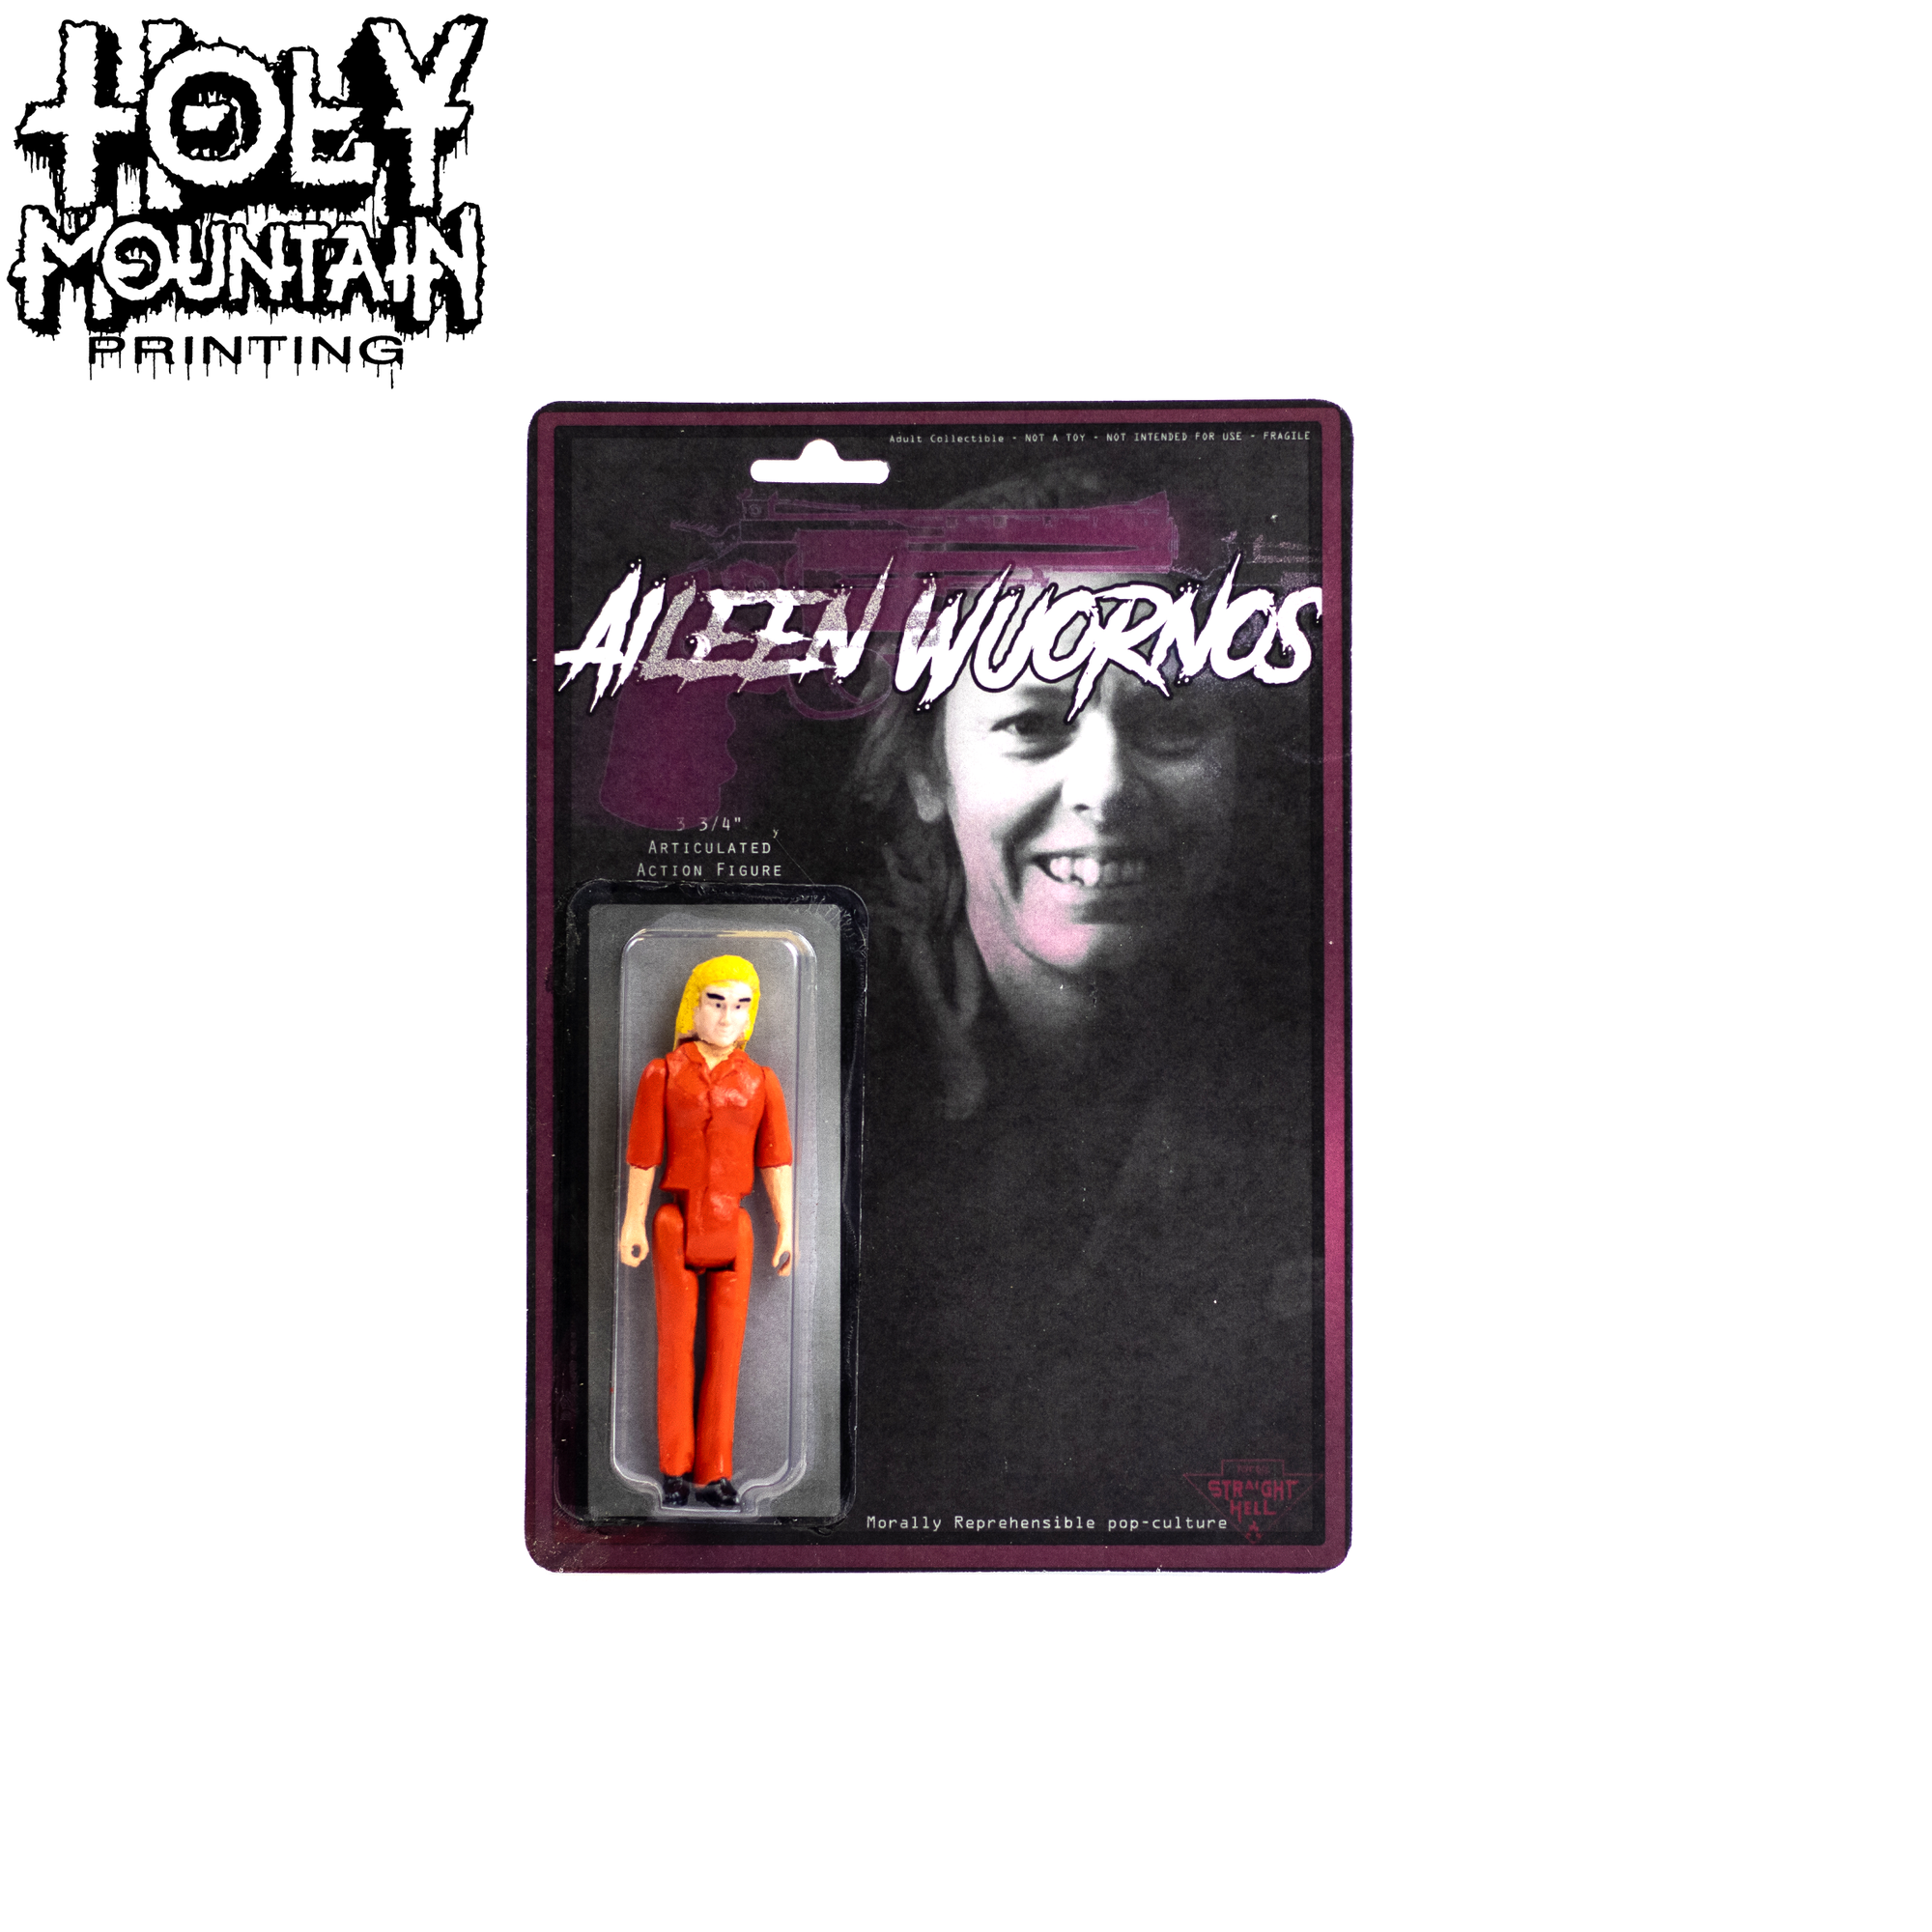 STRAIGHT TO HELL TOY CO - Aileen Wuornos